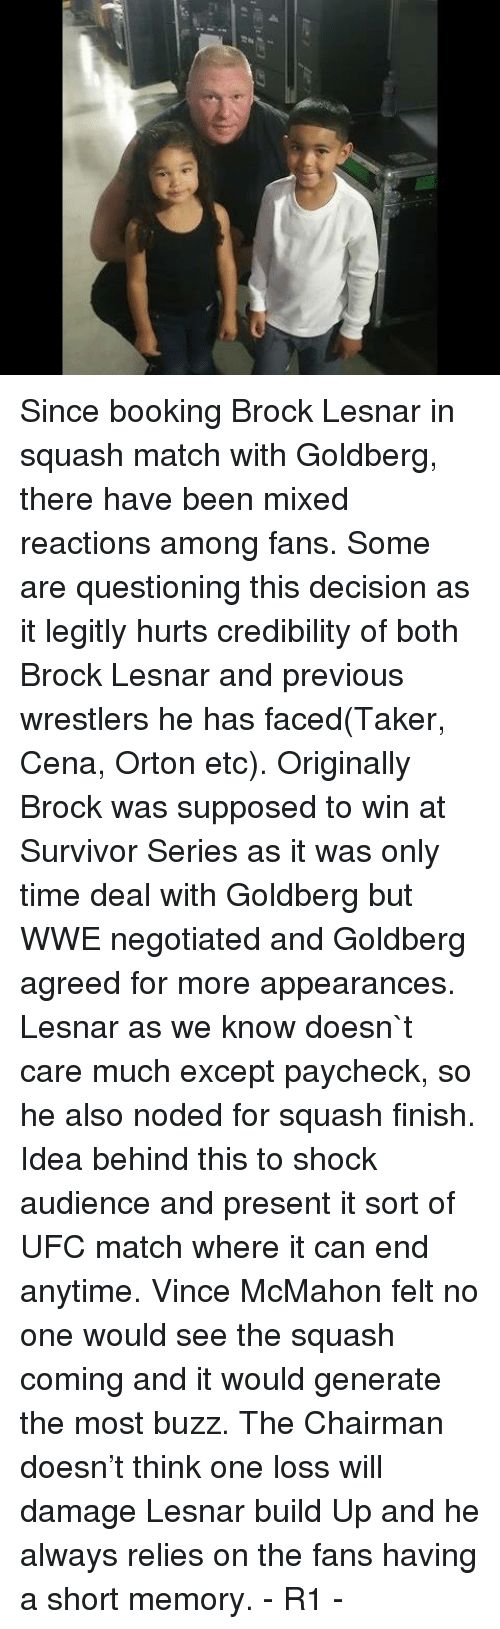 Memes, Ufc, and Vince McMahon: Since booking Brock Lesnar in squash match with Goldberg, there have been mixed reactions among fans. Some are questioning this decision as it legitly hurts credibility of both Brock Lesnar and previous wrestlers he has faced(Taker, Cena, Orton etc).   Originally Brock was supposed to win at Survivor Series as it was only time deal with Goldberg but WWE negotiated and Goldberg agreed for more appearances. Lesnar as we know doesn`t care much except paycheck, so he also noded for squash finish.   Idea behind this to shock audience and present it sort of UFC match where it can end anytime. Vince McMahon felt no one would see the squash coming and it would generate the most buzz. The Chairman doesn't think one loss will damage Lesnar build Up and he always relies on the fans having a short memory.  - R1 -